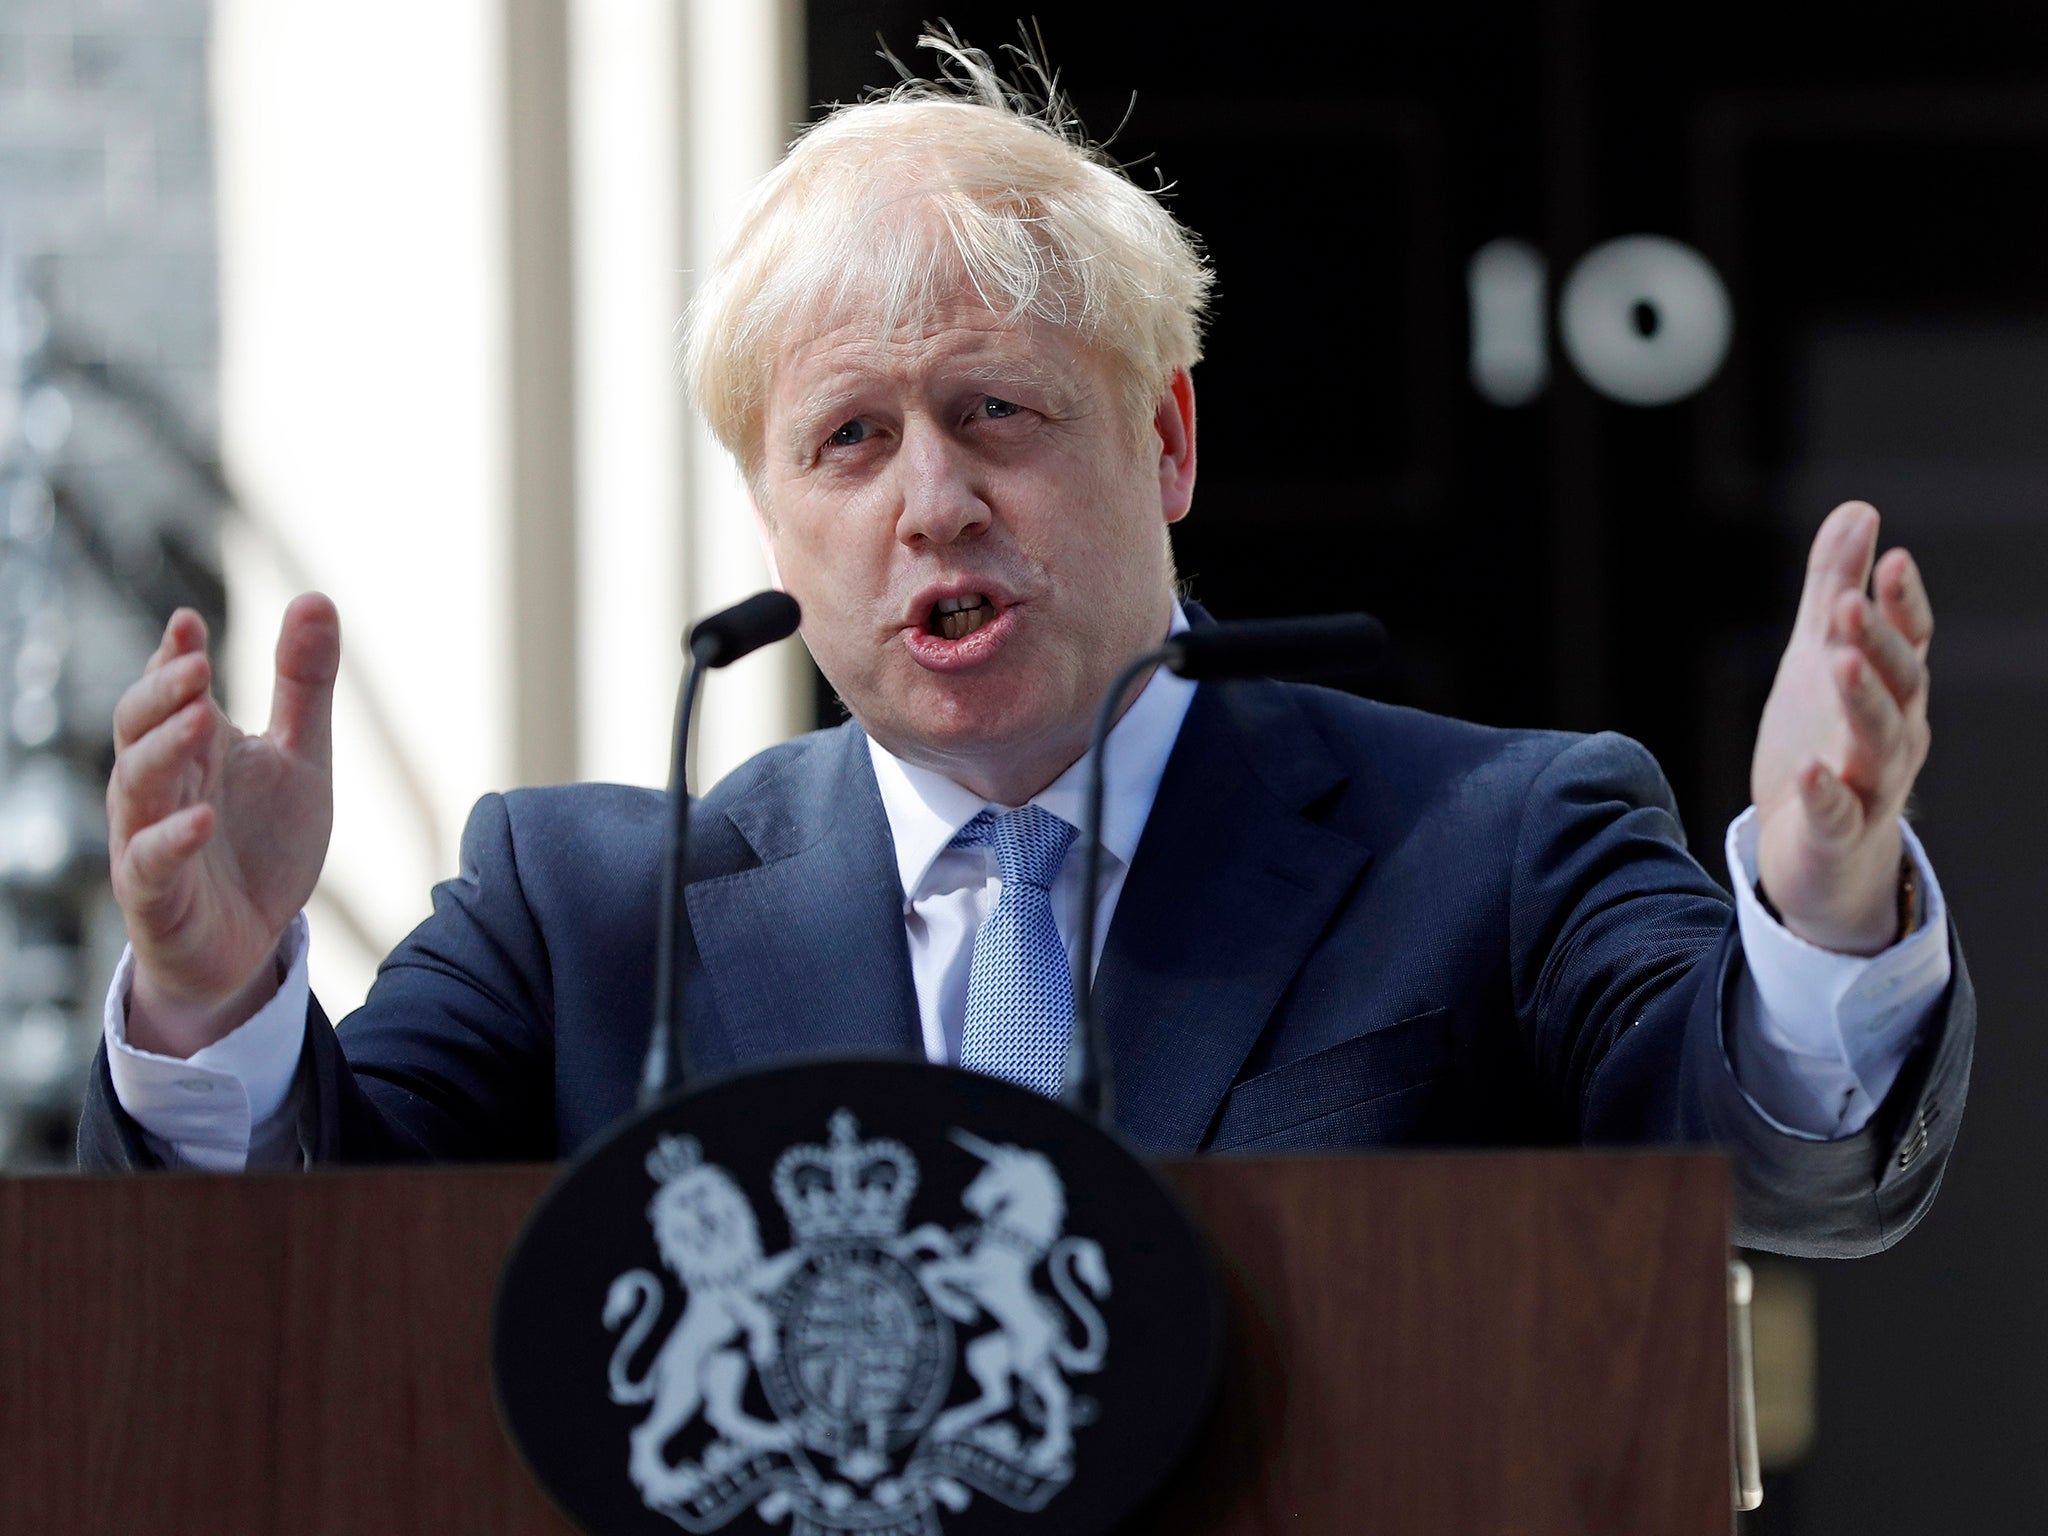 A near-identical struggle for legitimacy played out in parliament 236 years ago – Boris Johnson should learn from it